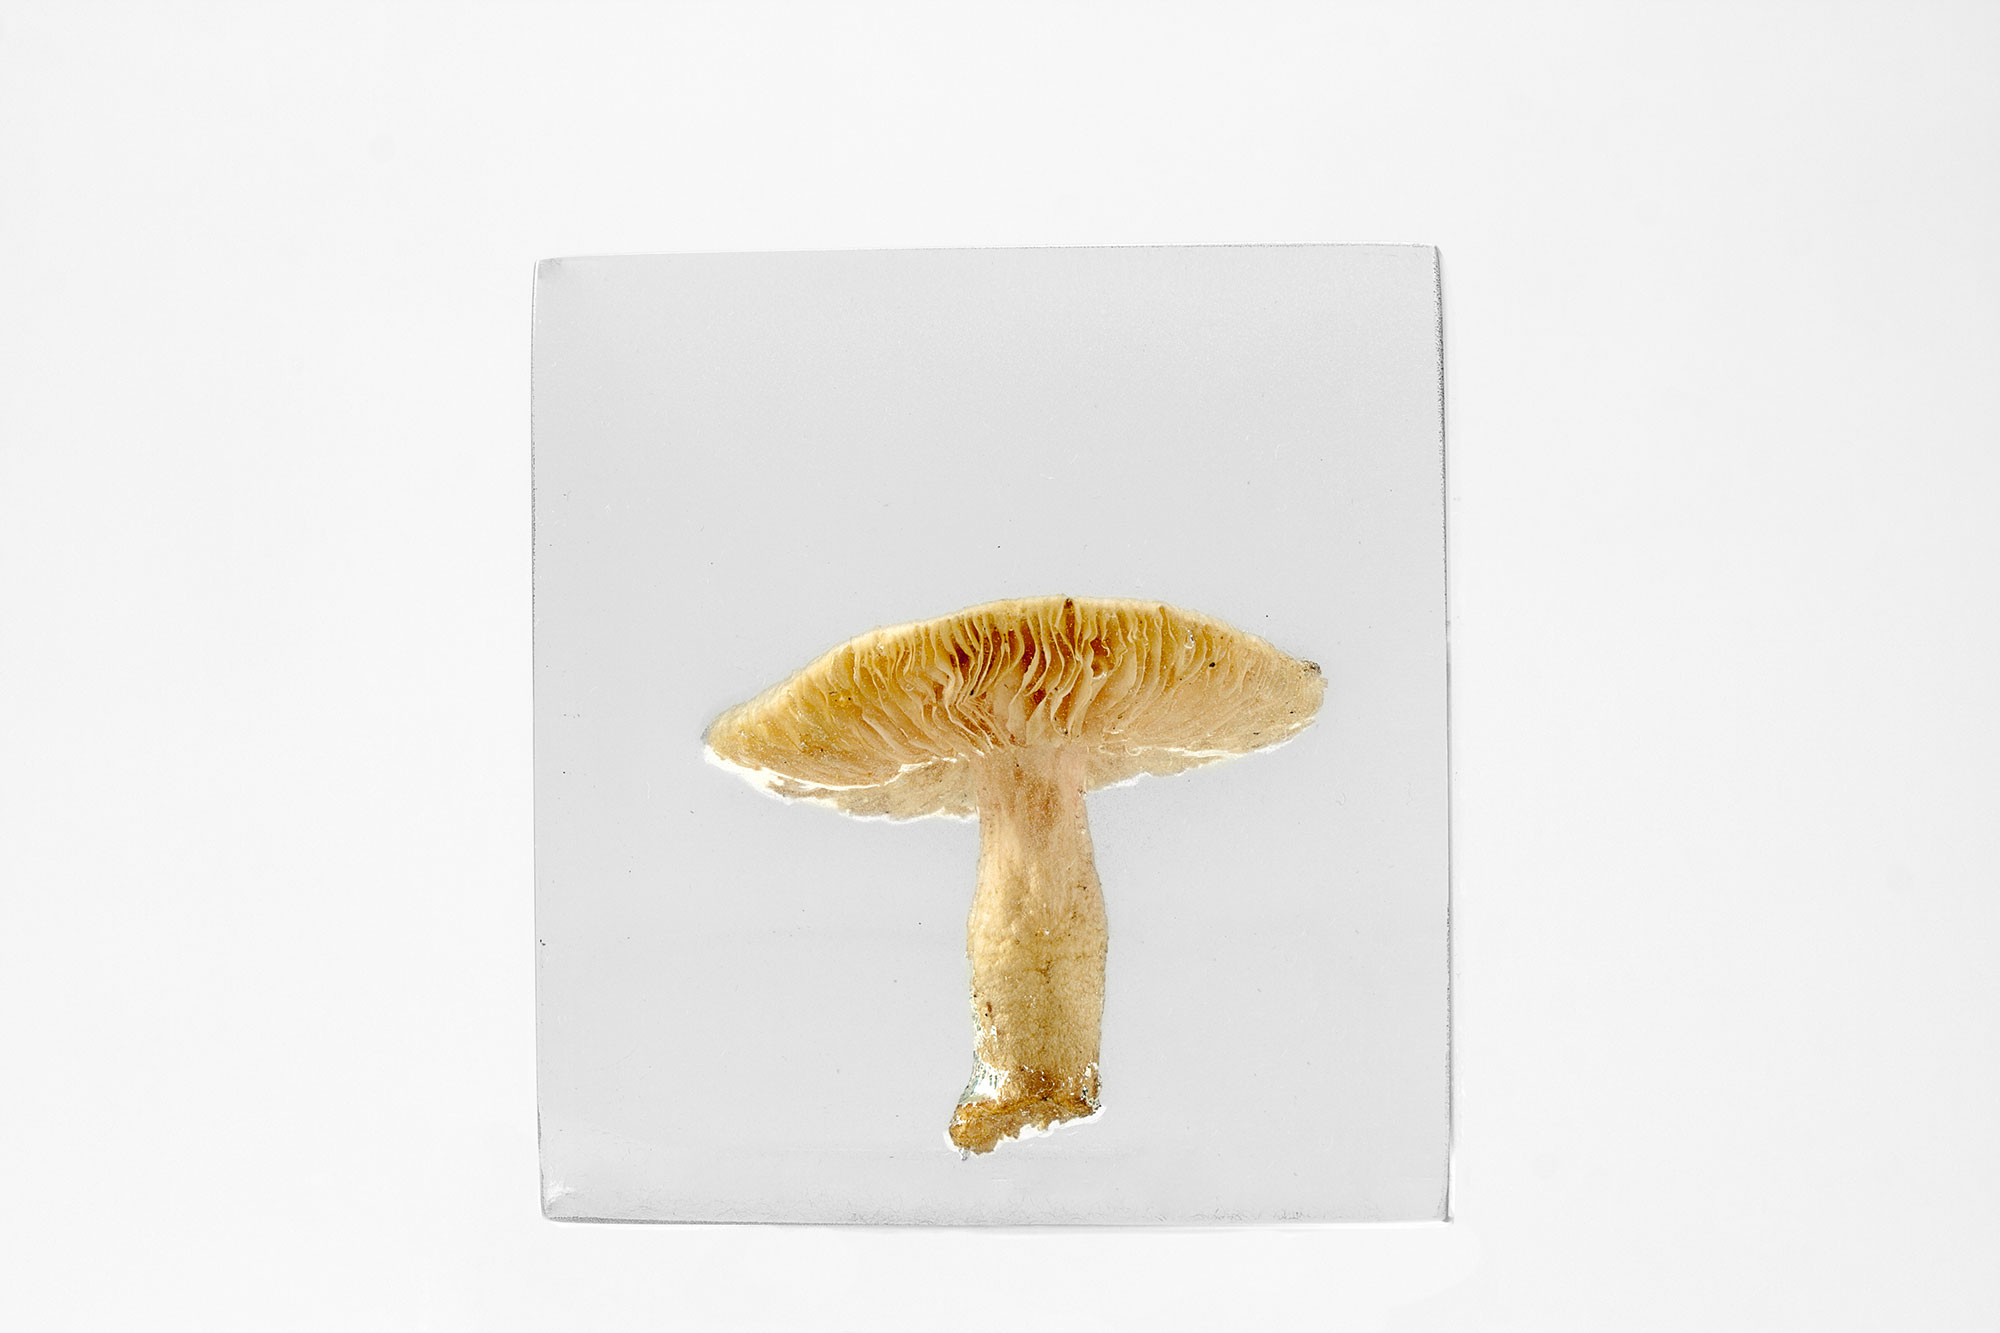 Art, The Flowery Dream: Specimen 11, 2010